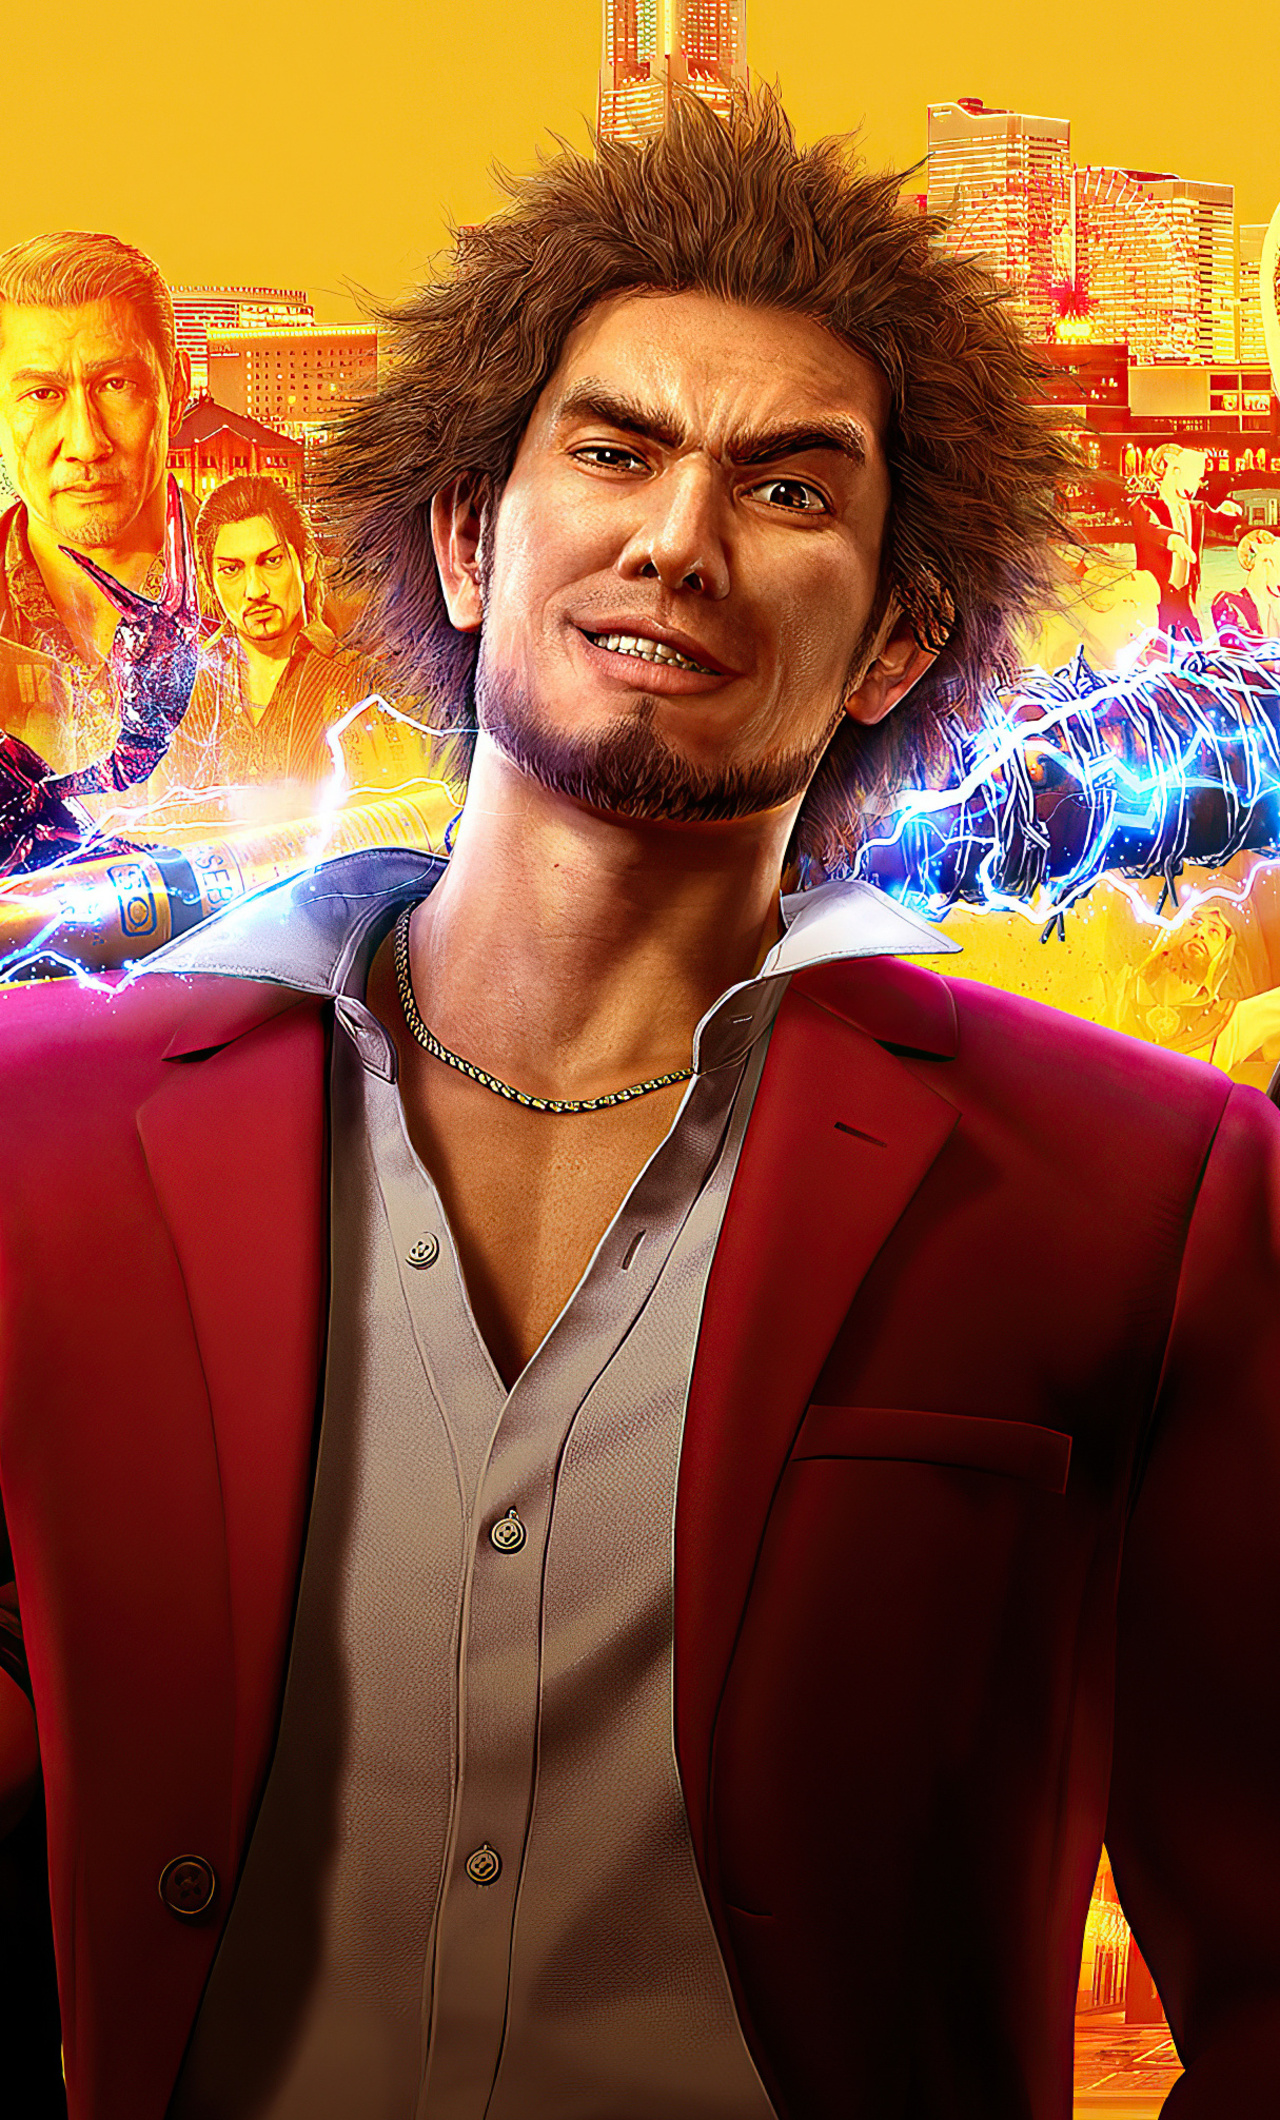 1280x2120 Yakuza Like A Dragon Iphone 6 Hd 4k Wallpapers Images Backgrounds Photos And Pictures